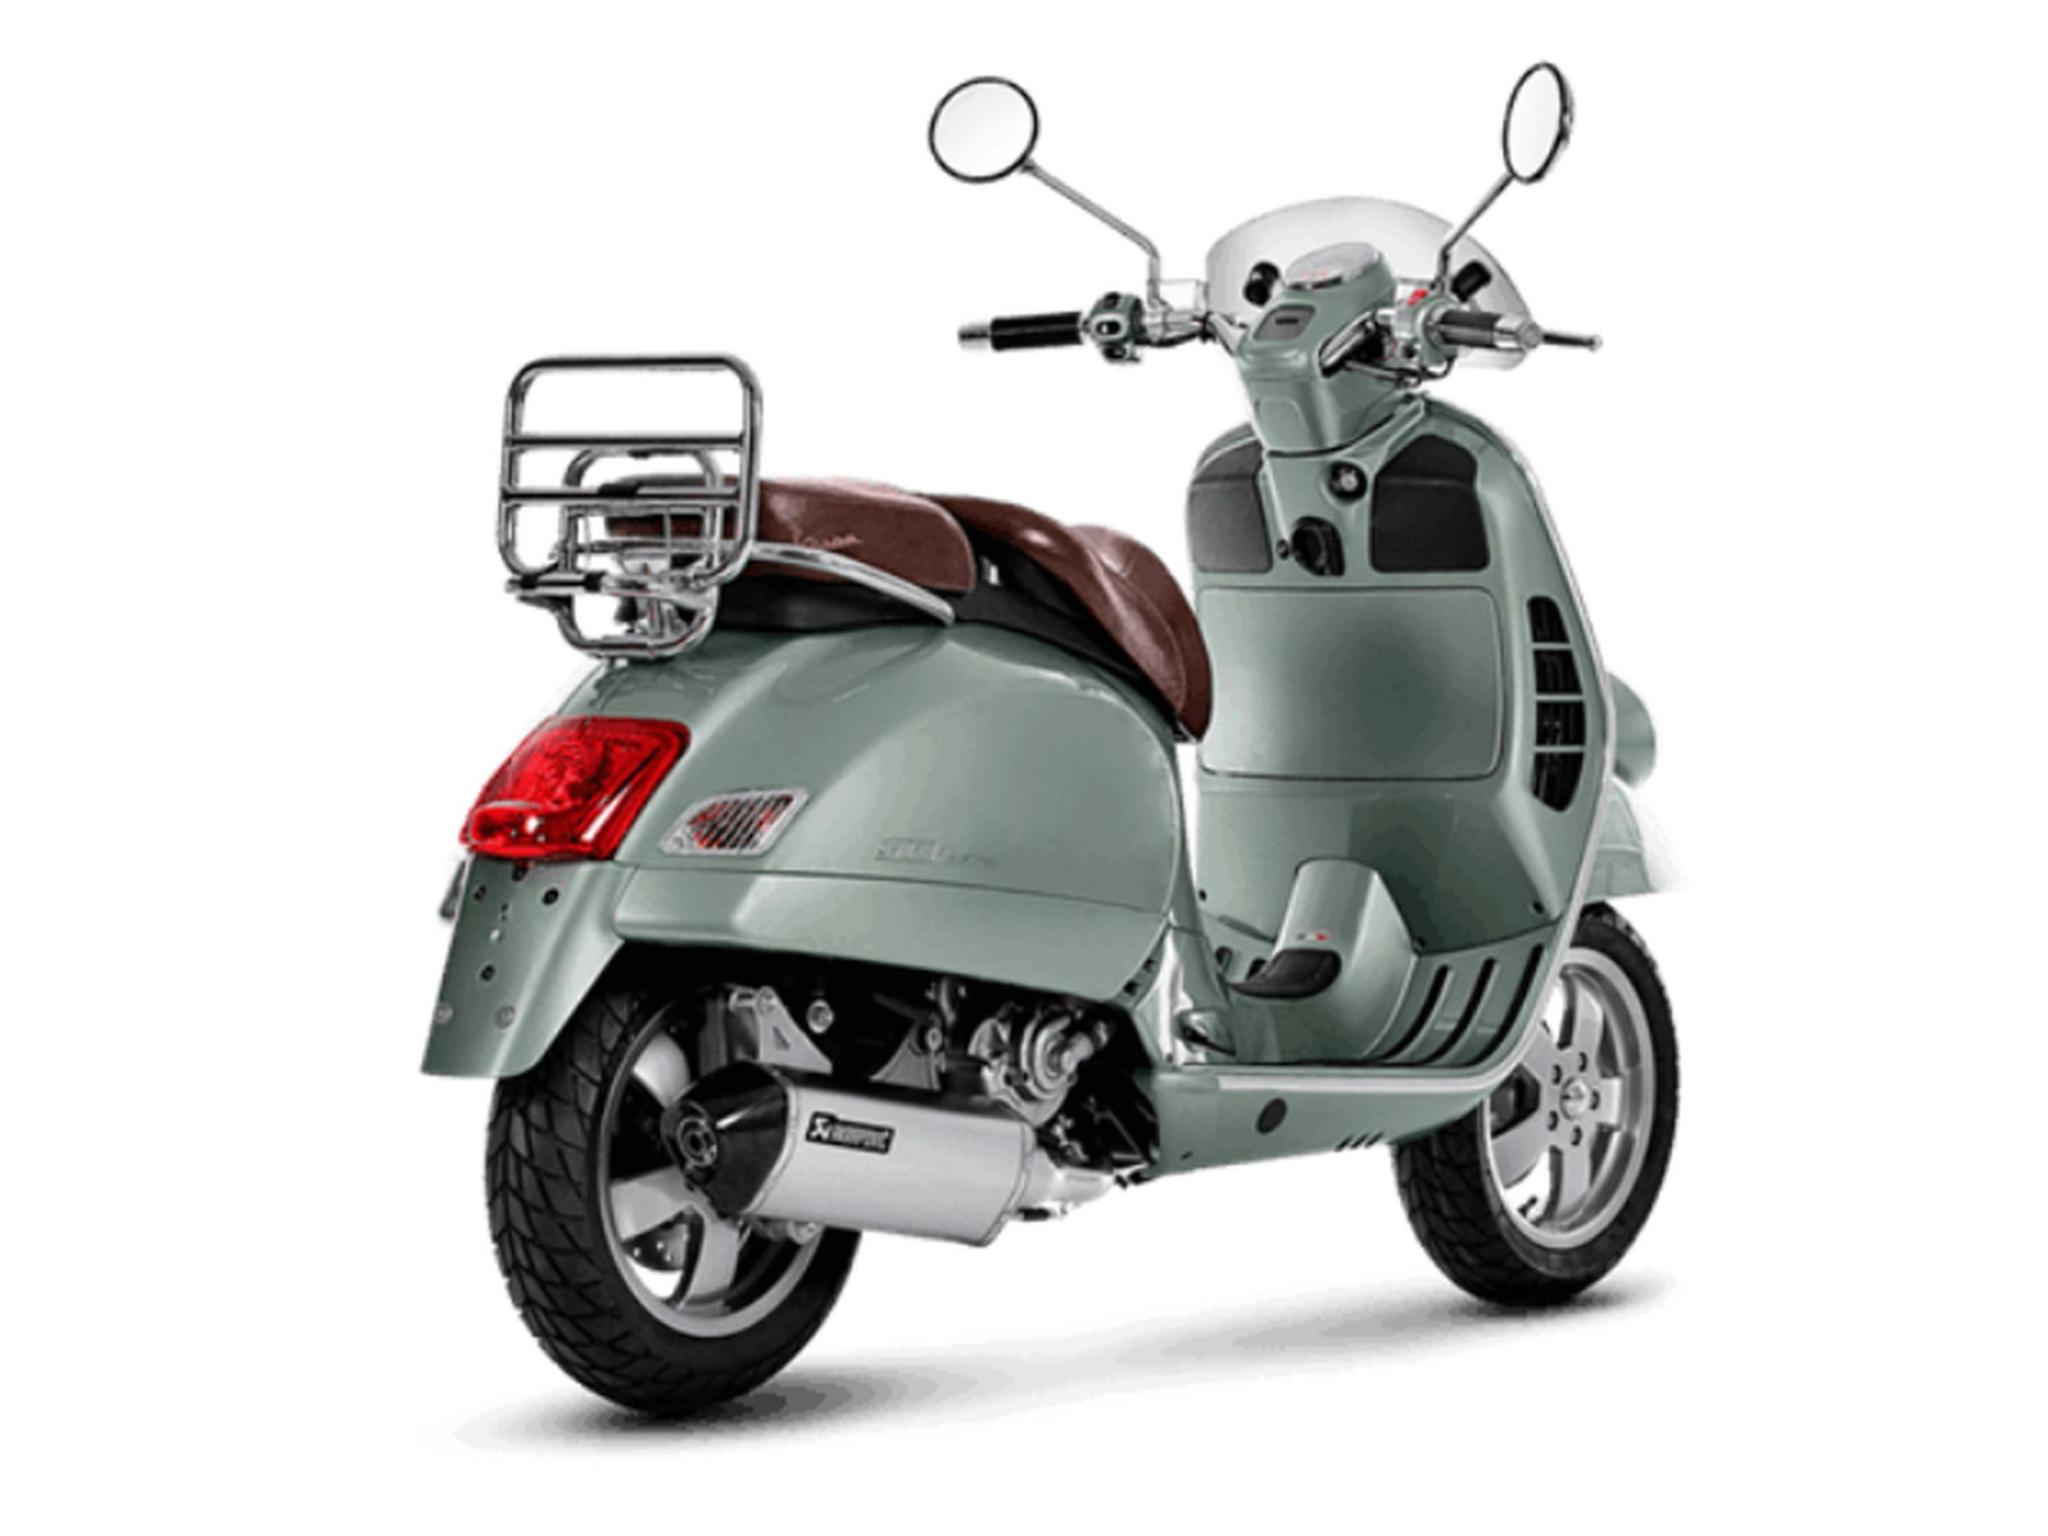 akrapovic auspuffanlage f r die vespa gts 300 hpe. Black Bedroom Furniture Sets. Home Design Ideas